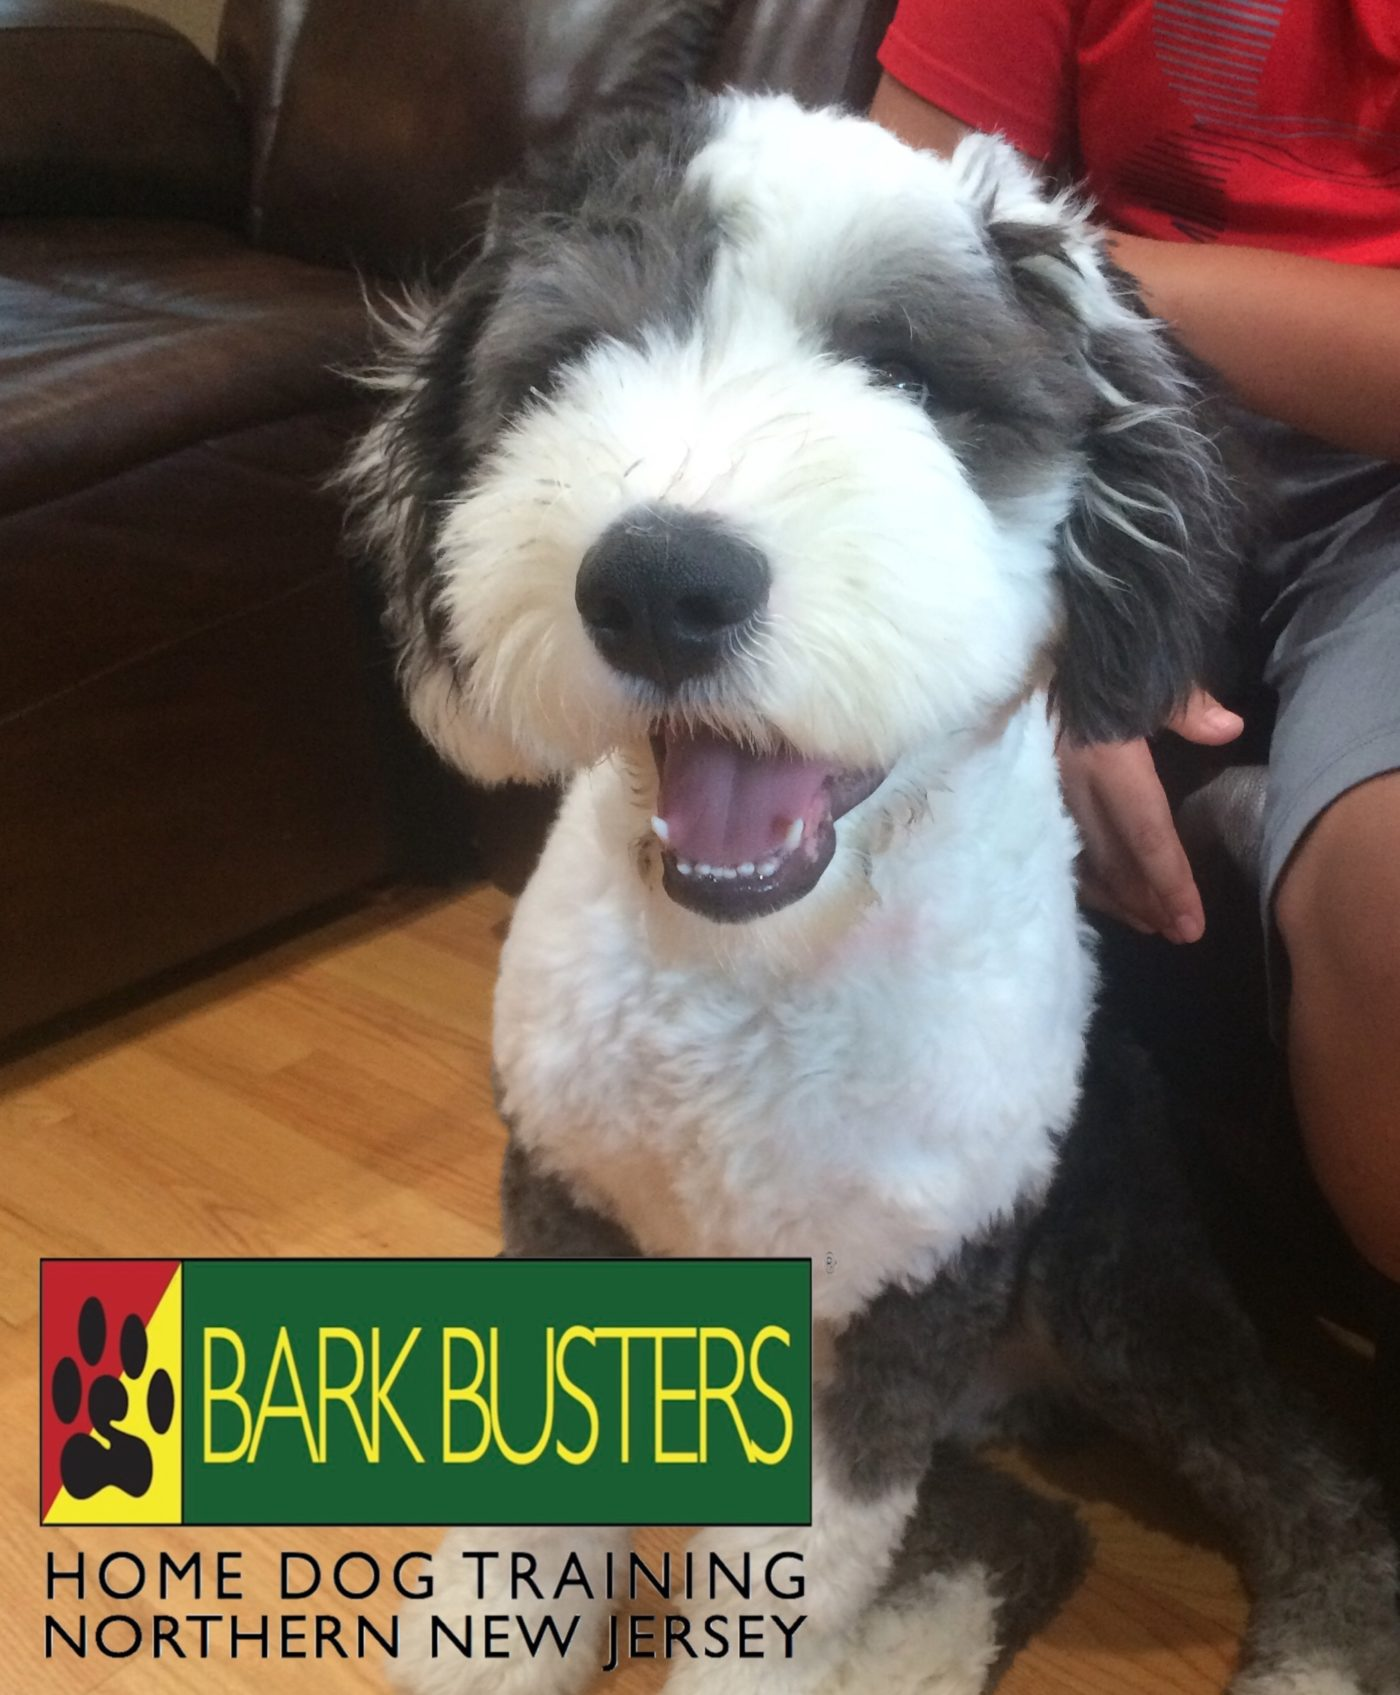 #BarkBusters #dogtraining #dogtrainerNorthernNewJersey #speakdog #dogs #puppies #HappyDogsHappyFamilies #sheepdog #OldEnglishSheepdog #dogsOfBarkBusters #Rutherford